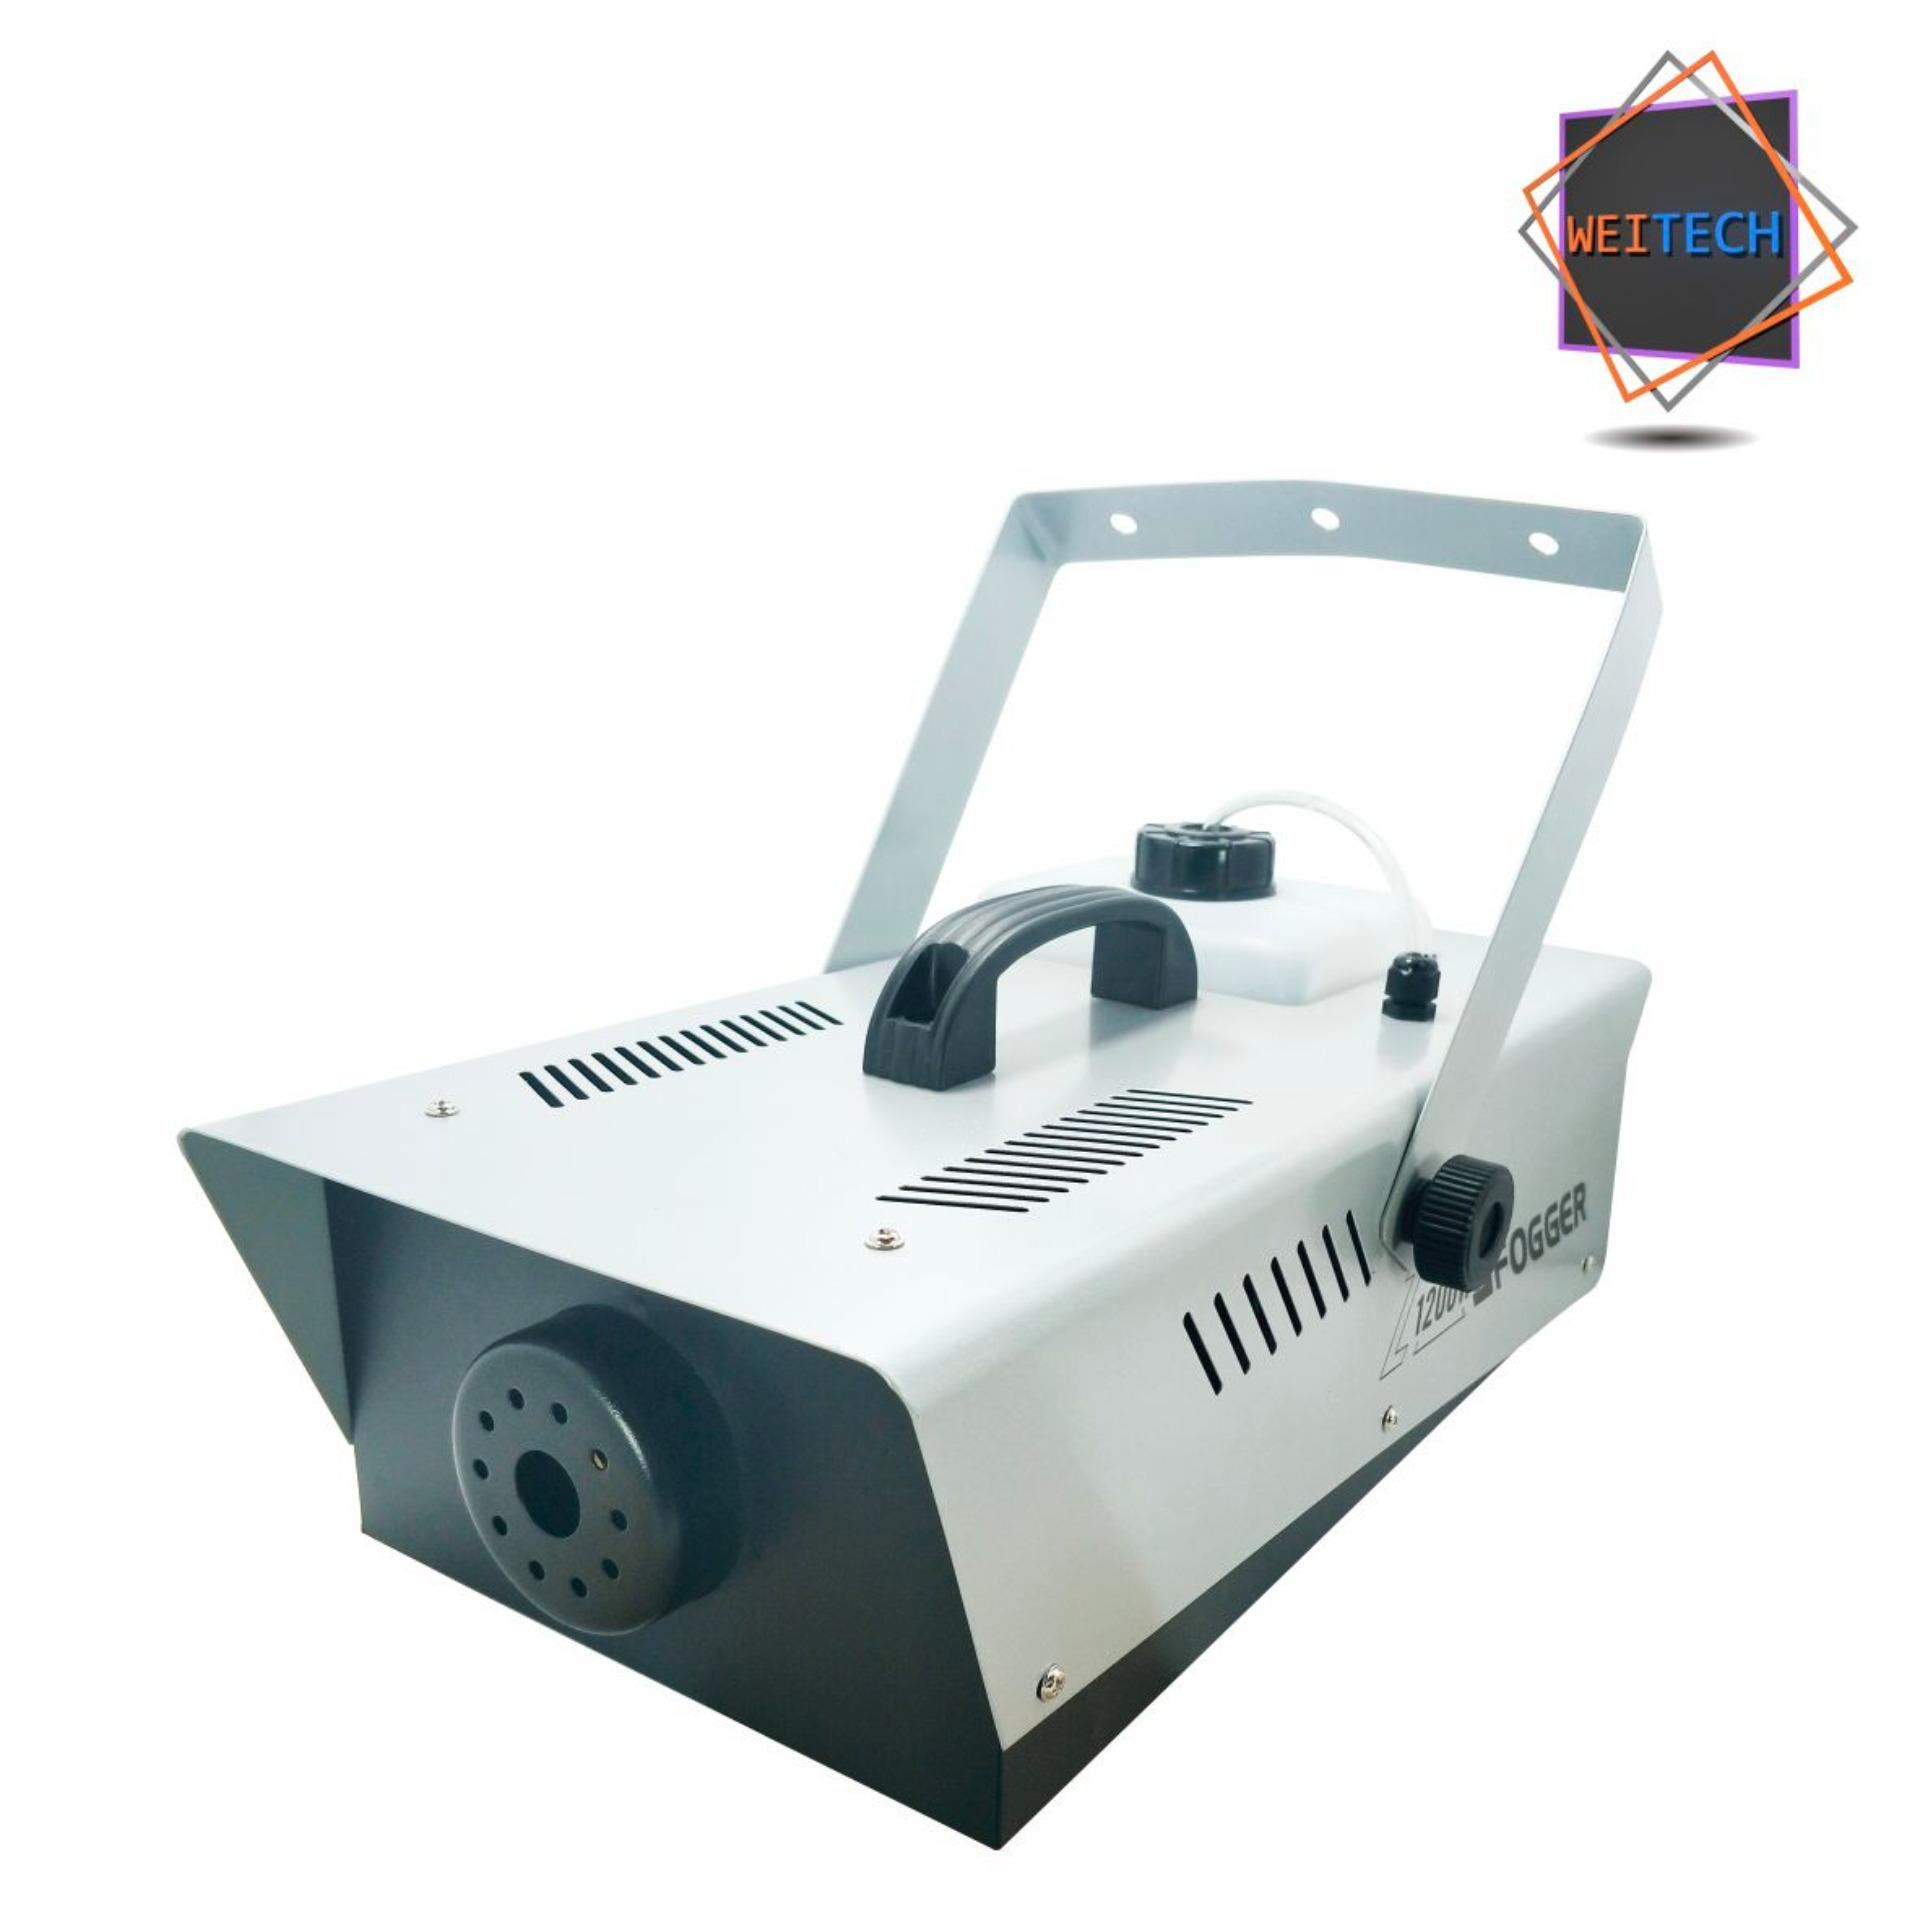 Spesifikasi Weitech Smoke Fog Machine For Stage 342 1200W Lengkap